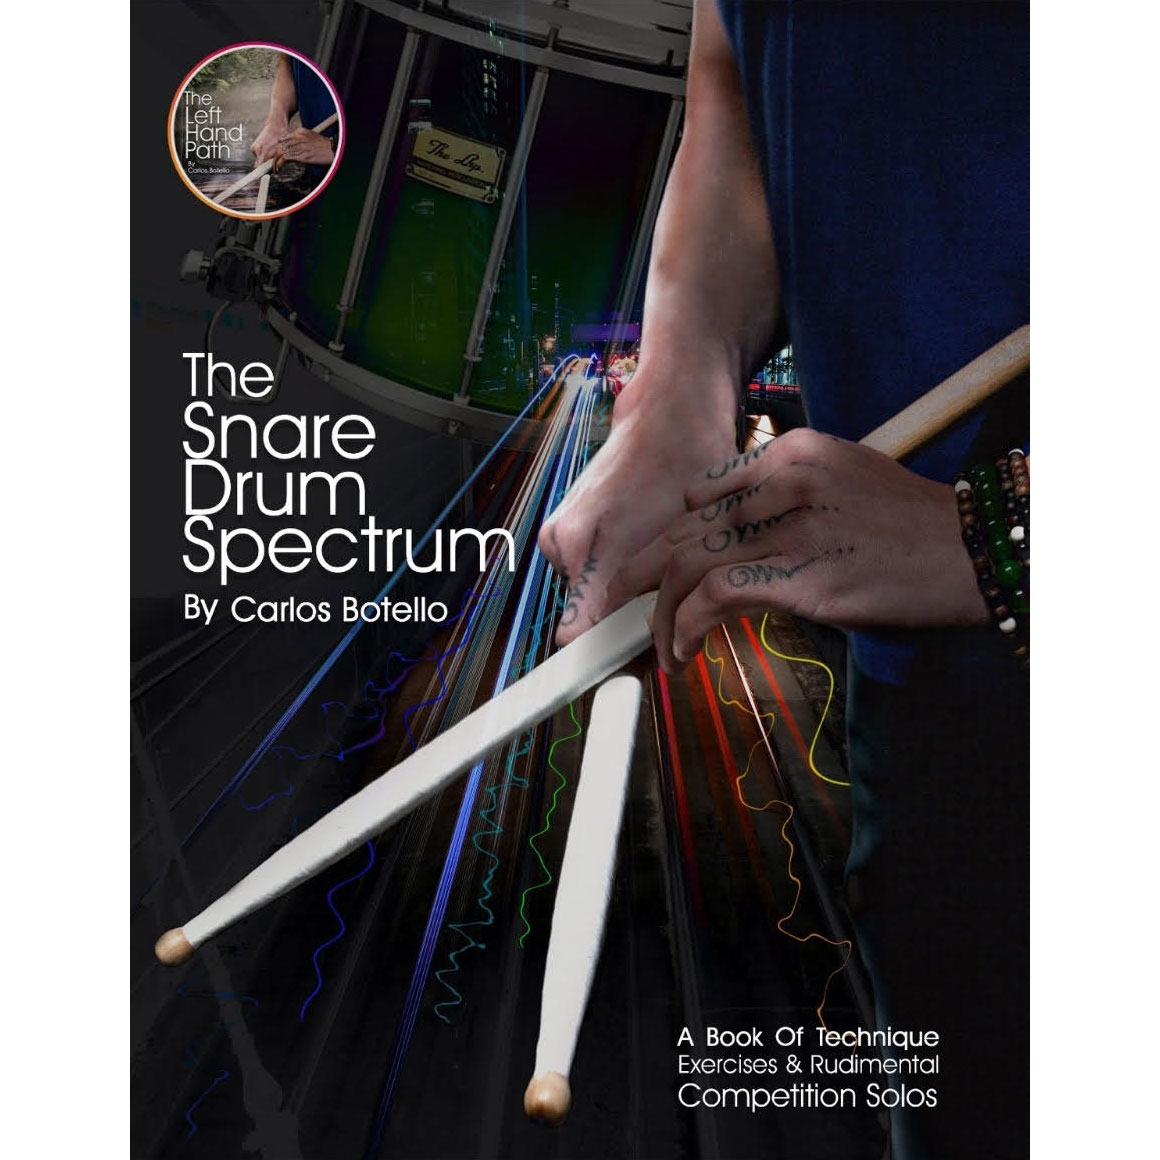 The Snare Drum Spectrum by Carlos Botello